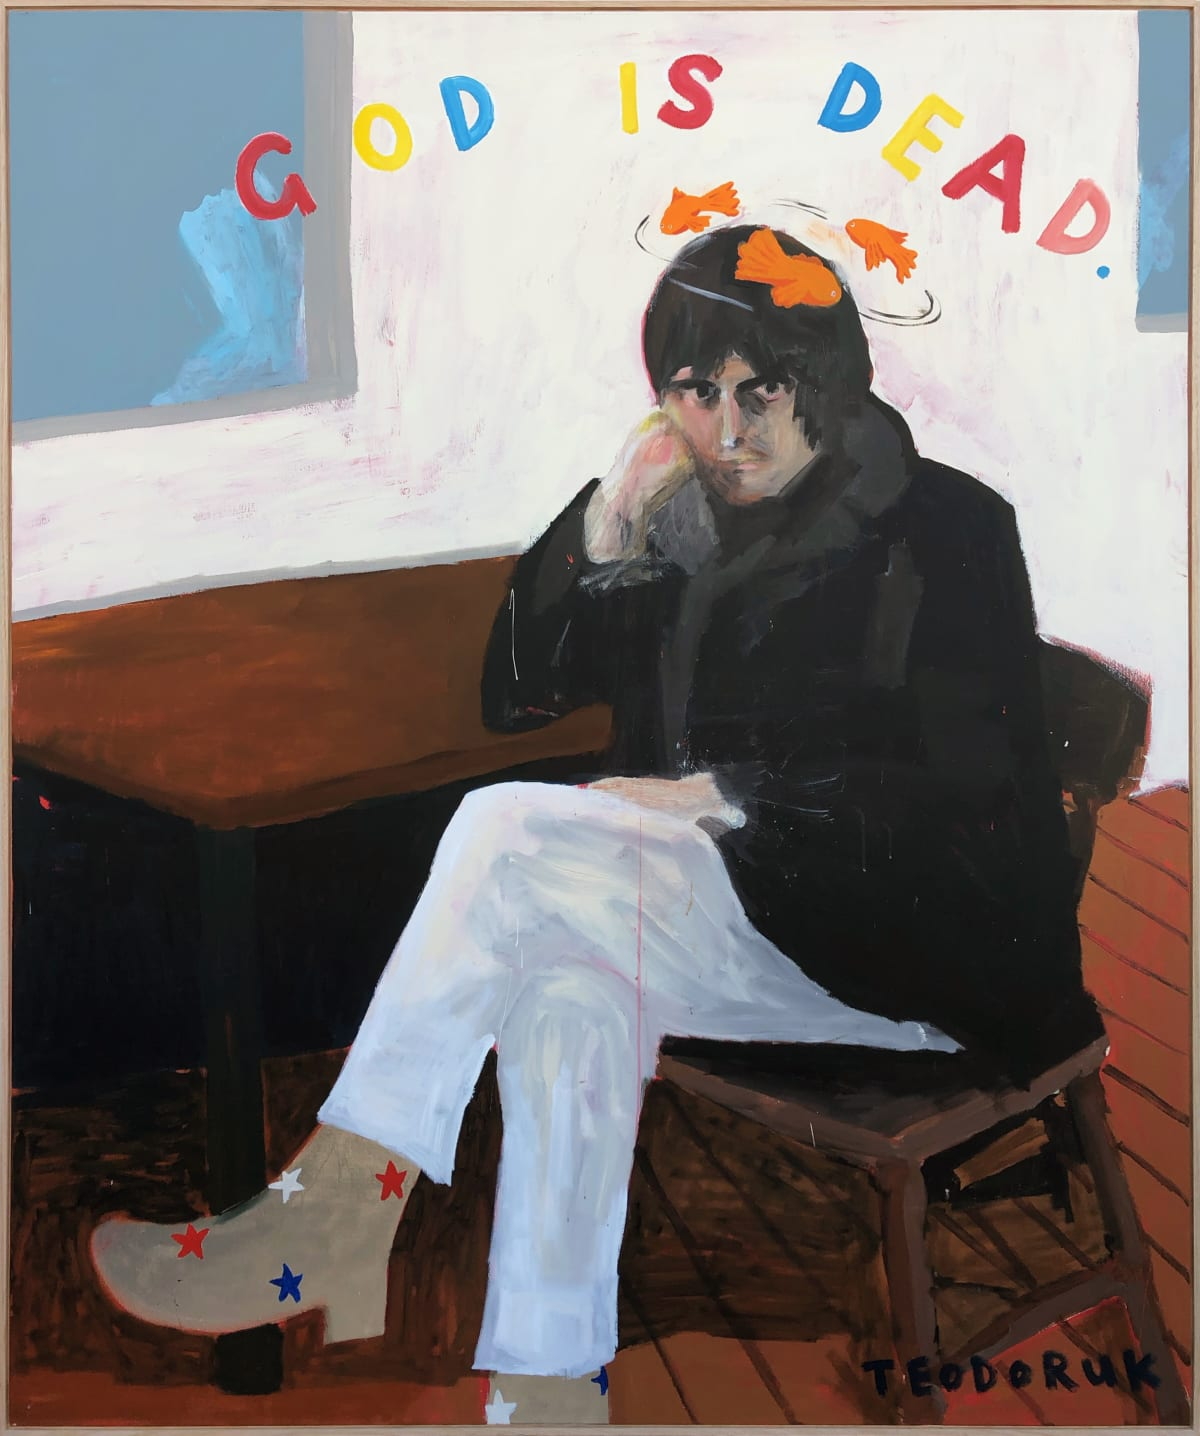 Brad Teodoruk, God Is Dead... Something Something... Gold Fish Swimming' Round Me Head, 2019